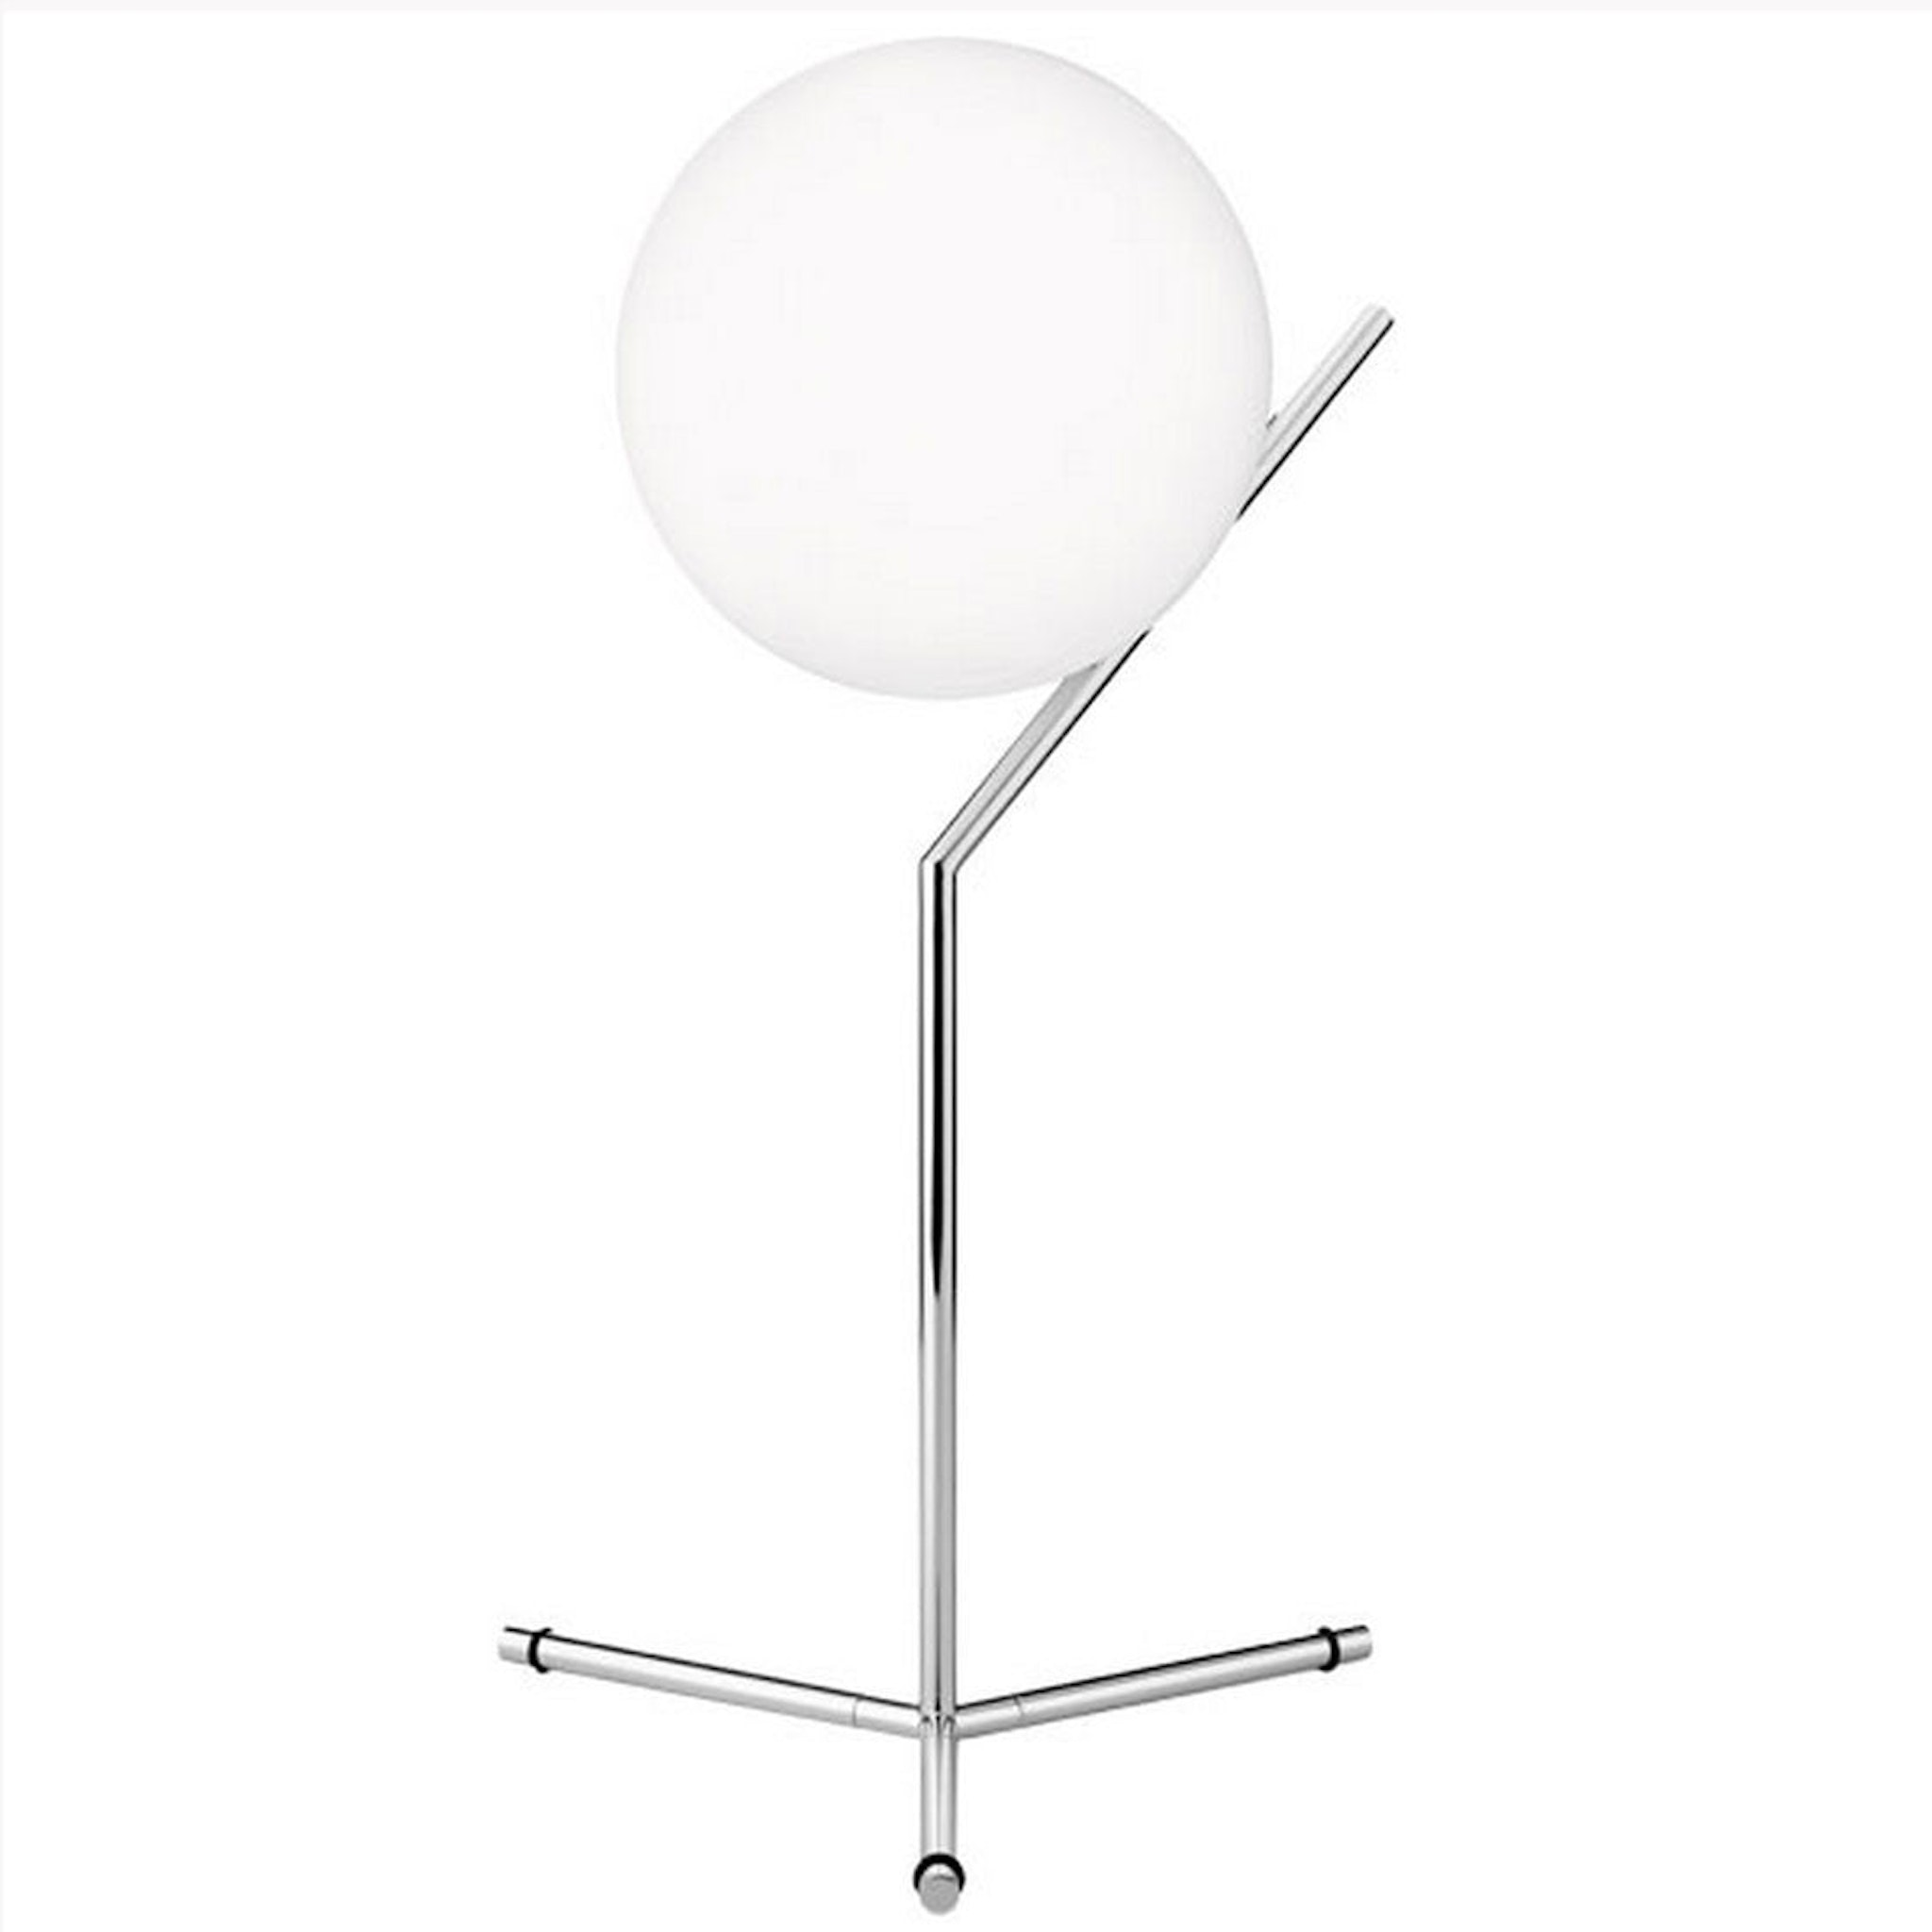 IC T1 High by Michael Anastassiades